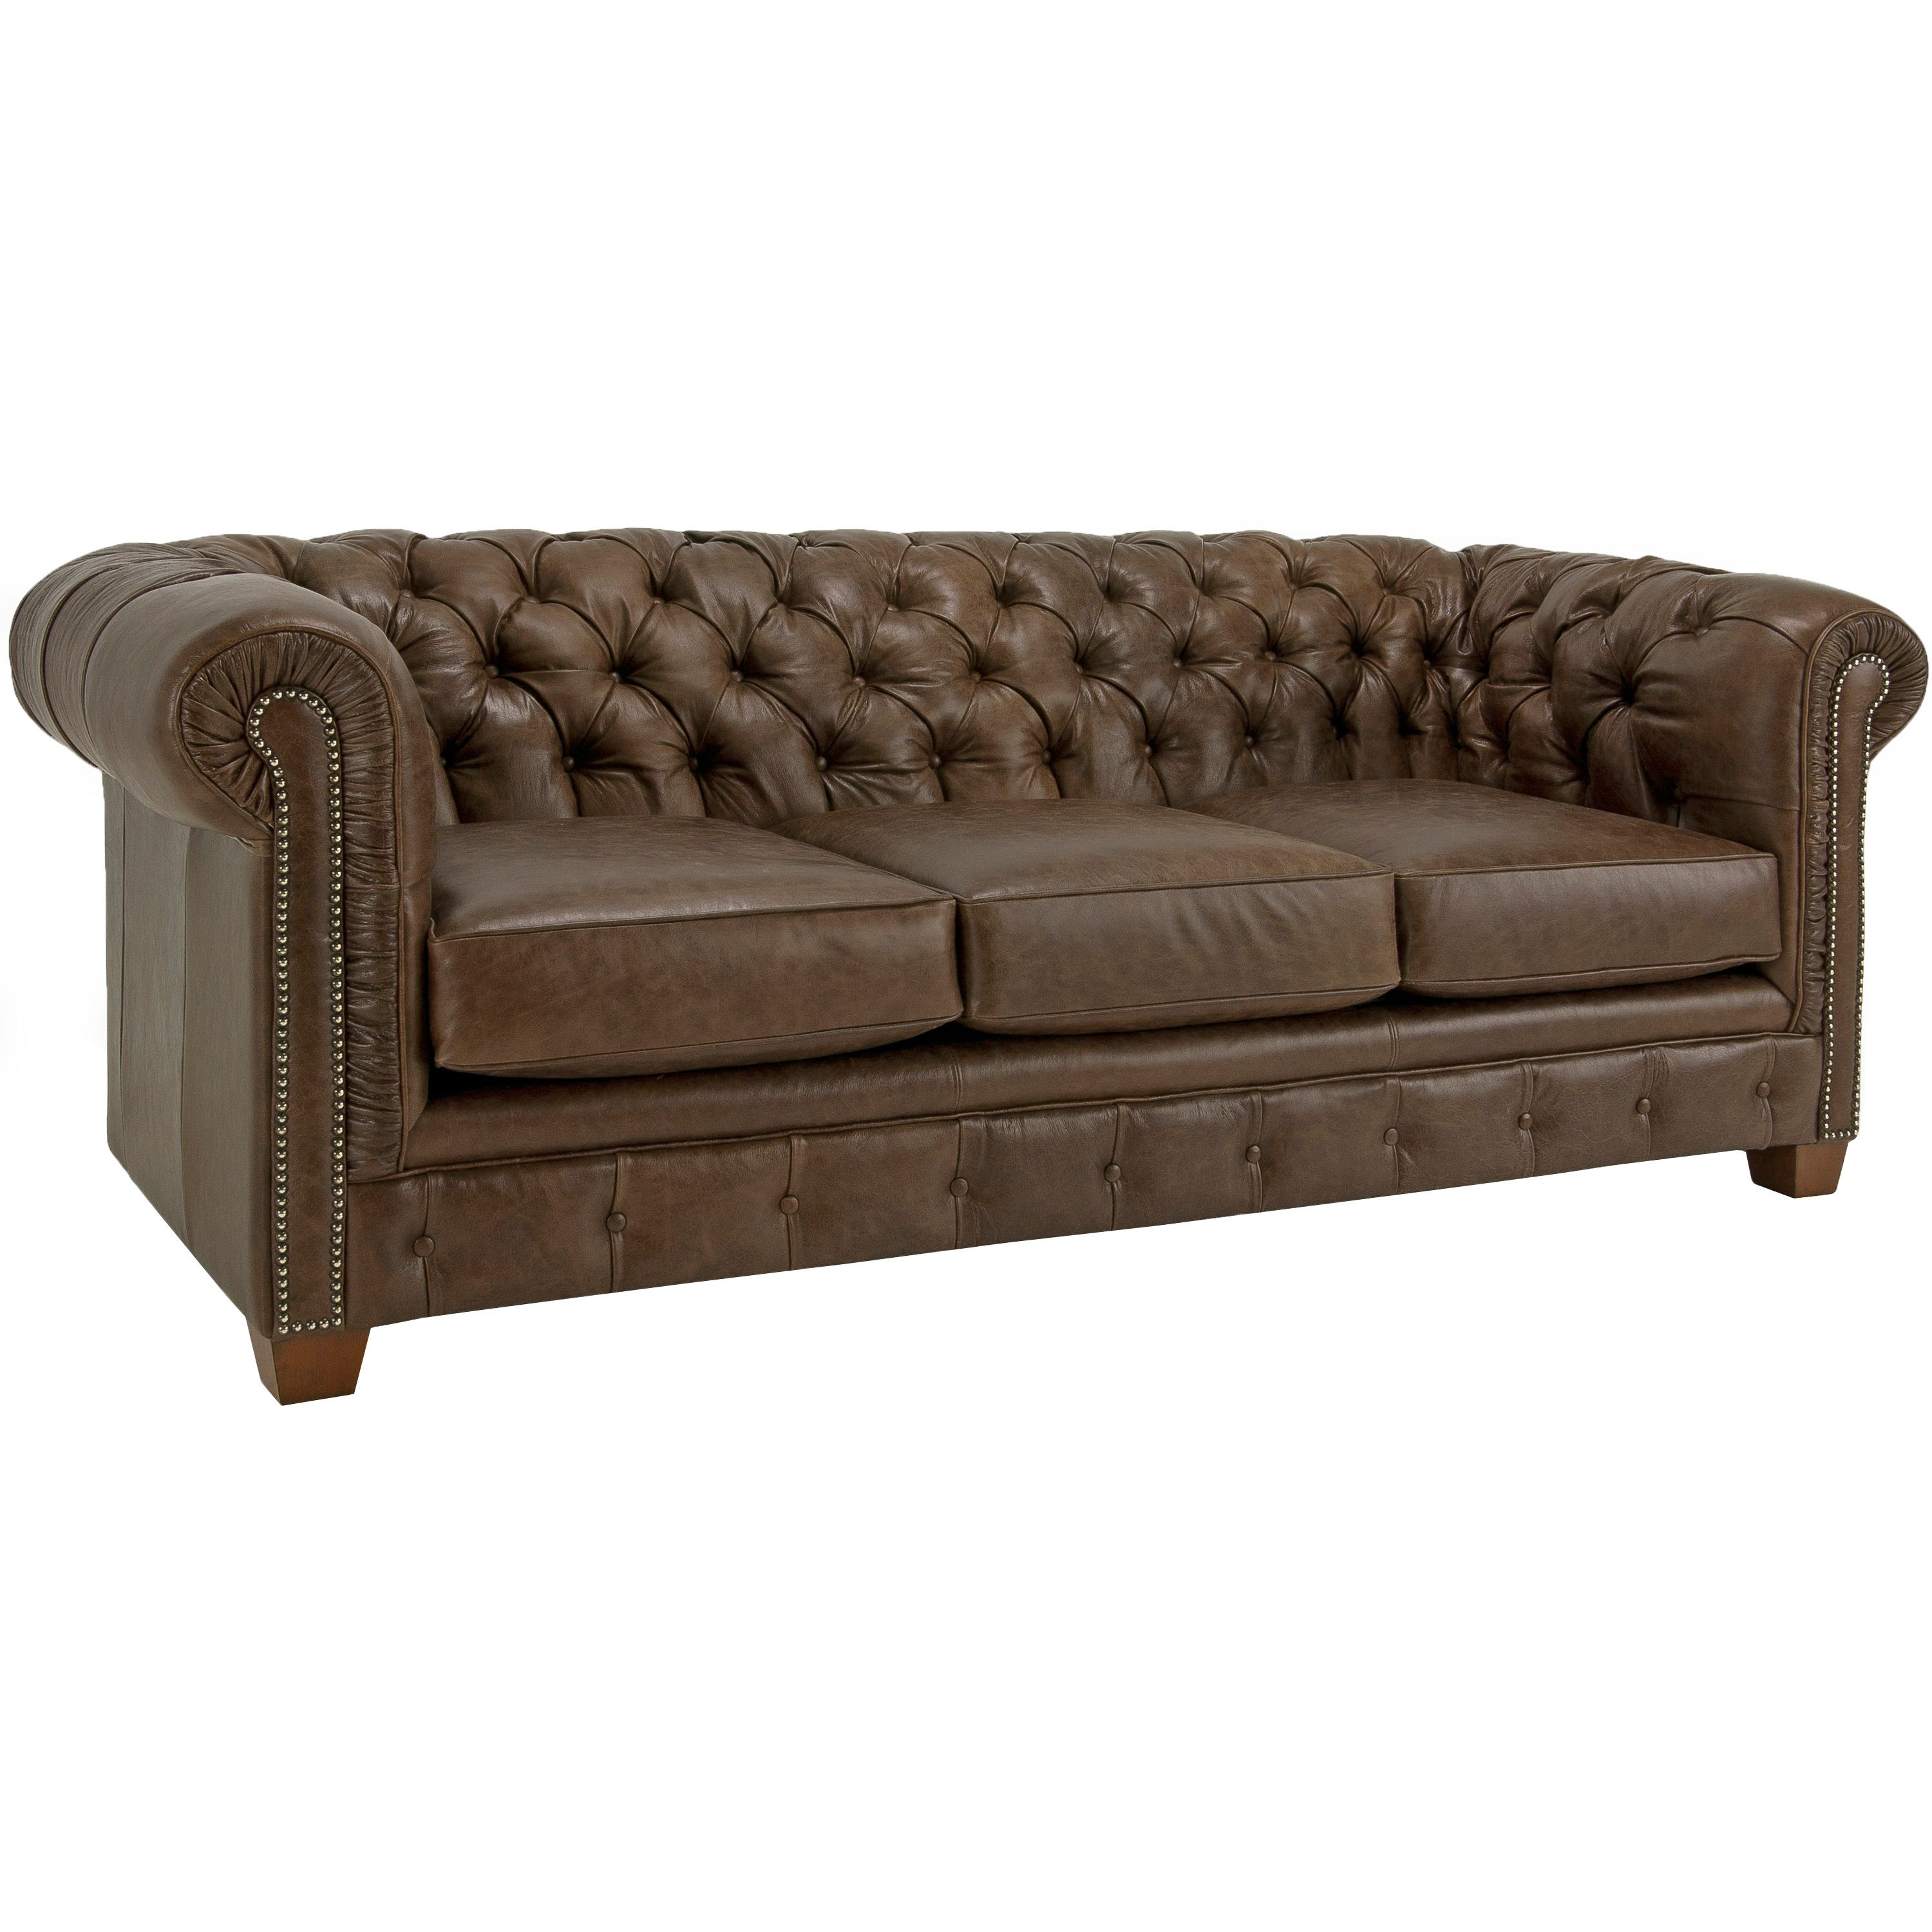 Canadian Made Sofas Toronto Tufted Back Leather Sofa Canadian Made 5360 Tufted Back